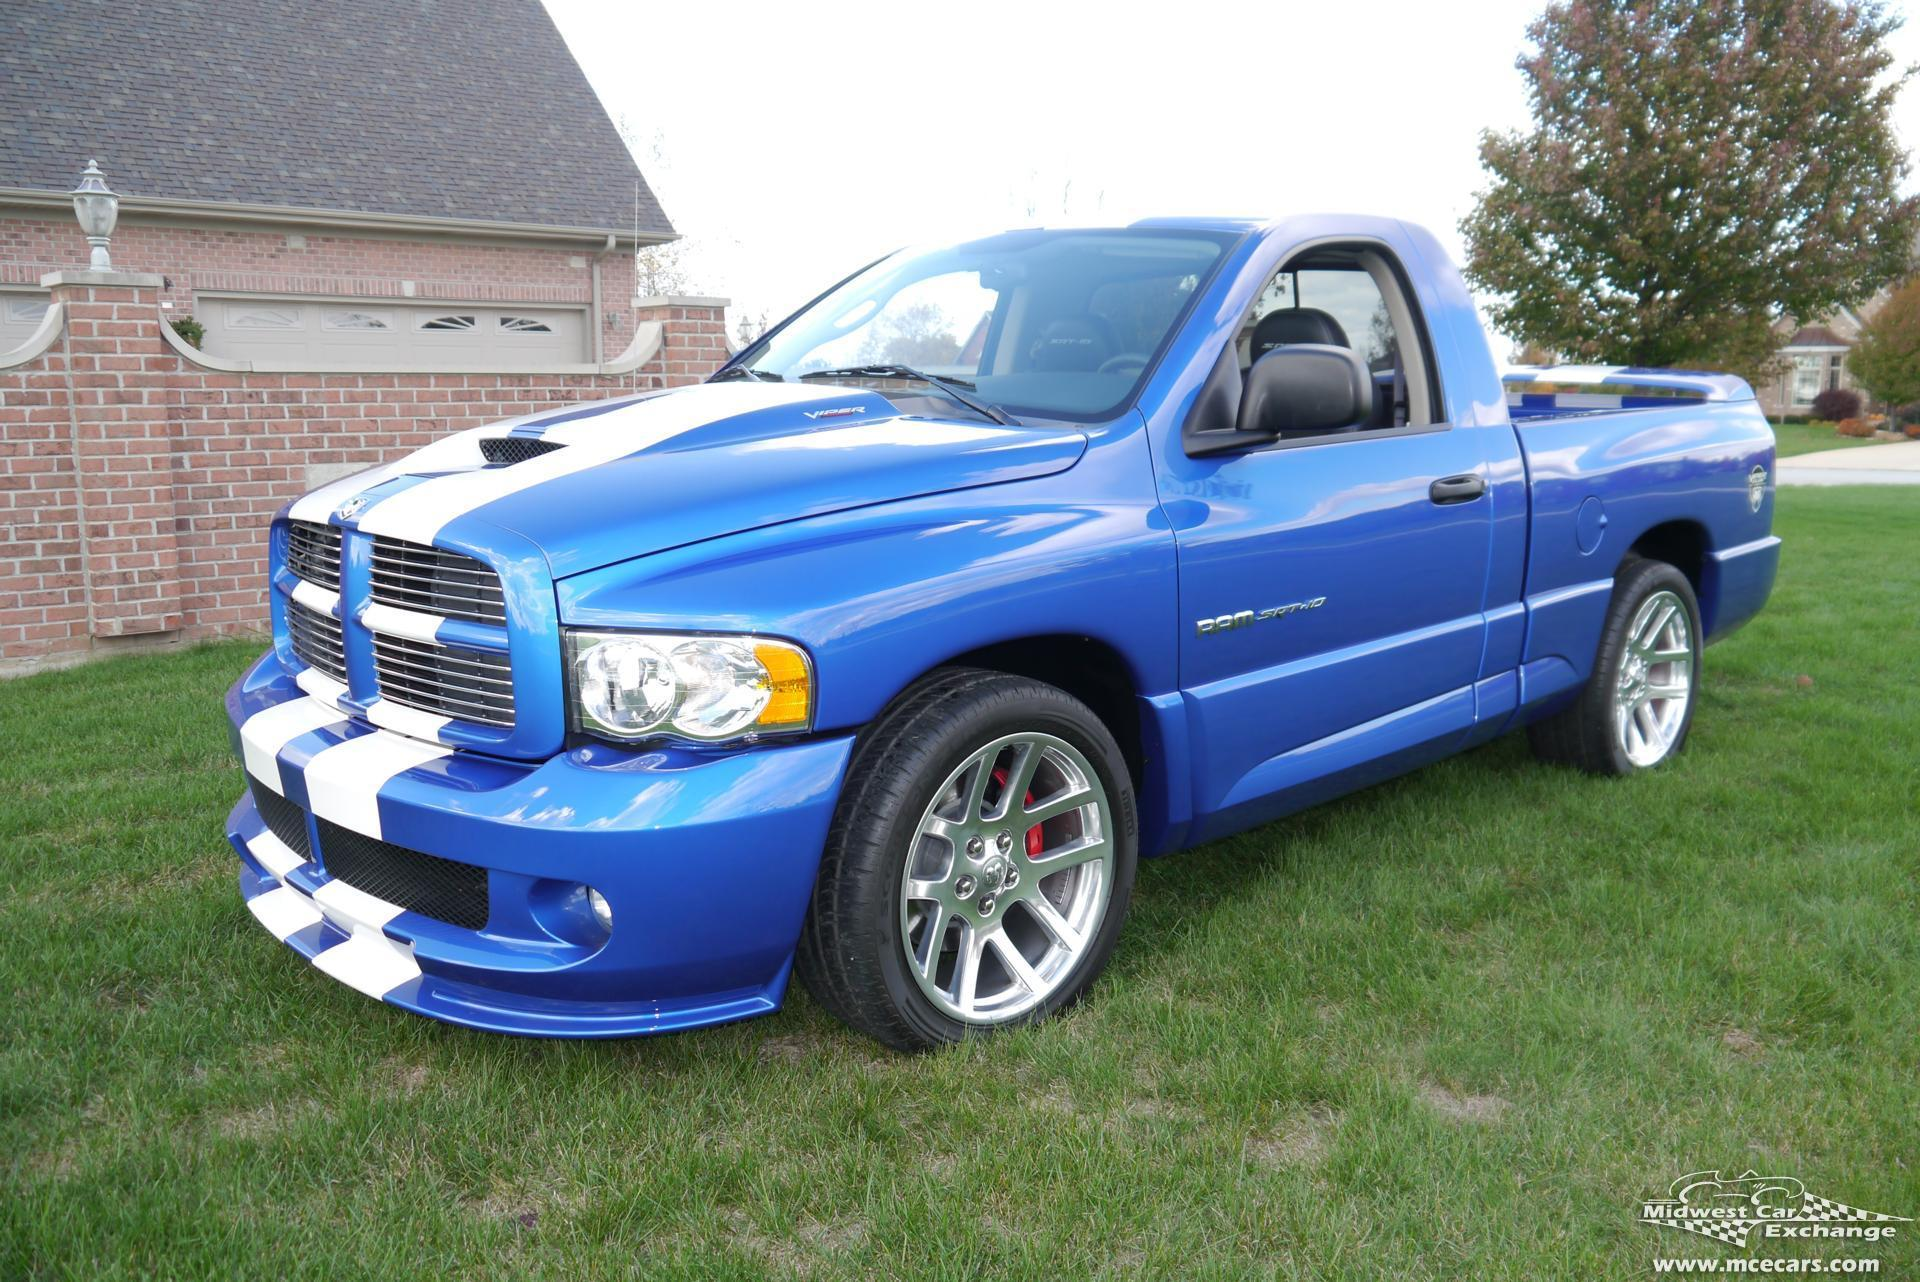 Ram Srt 10 >> 2004 Dodge SRT Viper Truck | Midwest Car Exchange